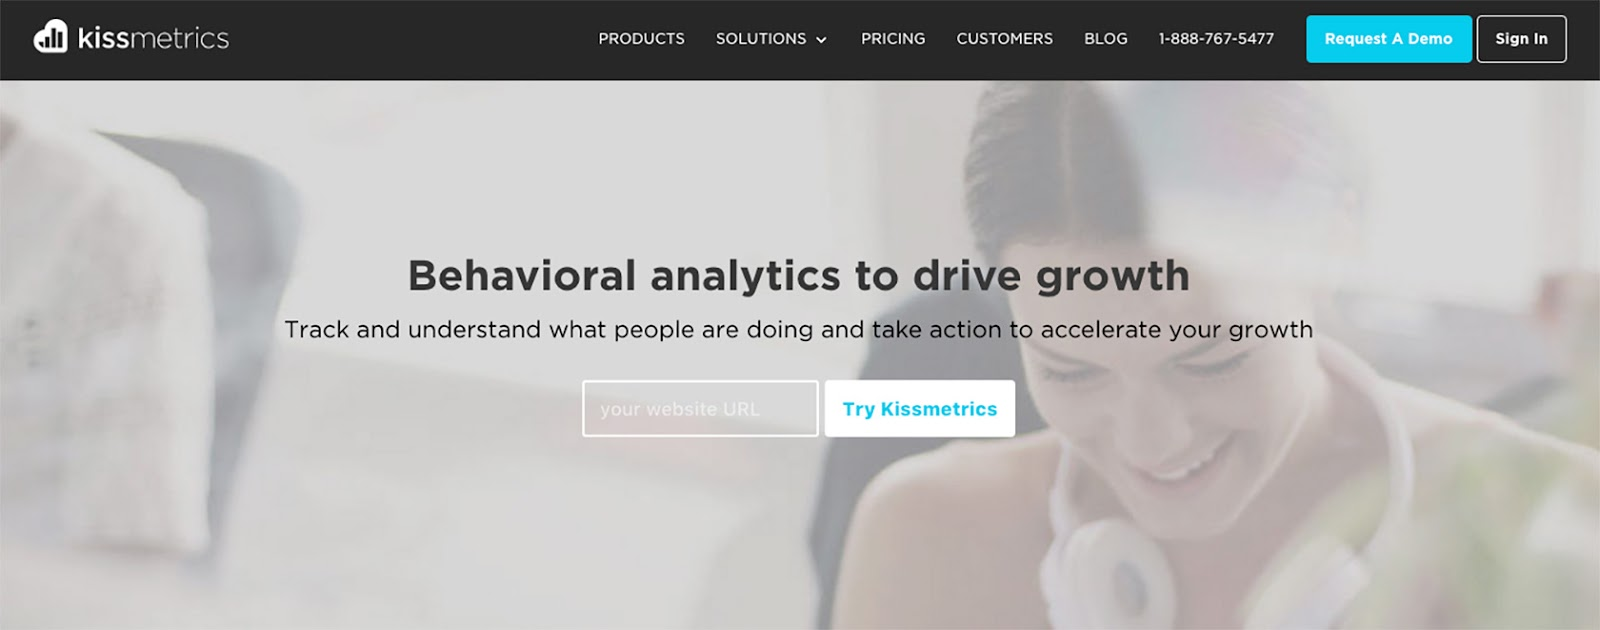 Image of KissMetrics' lead magnet